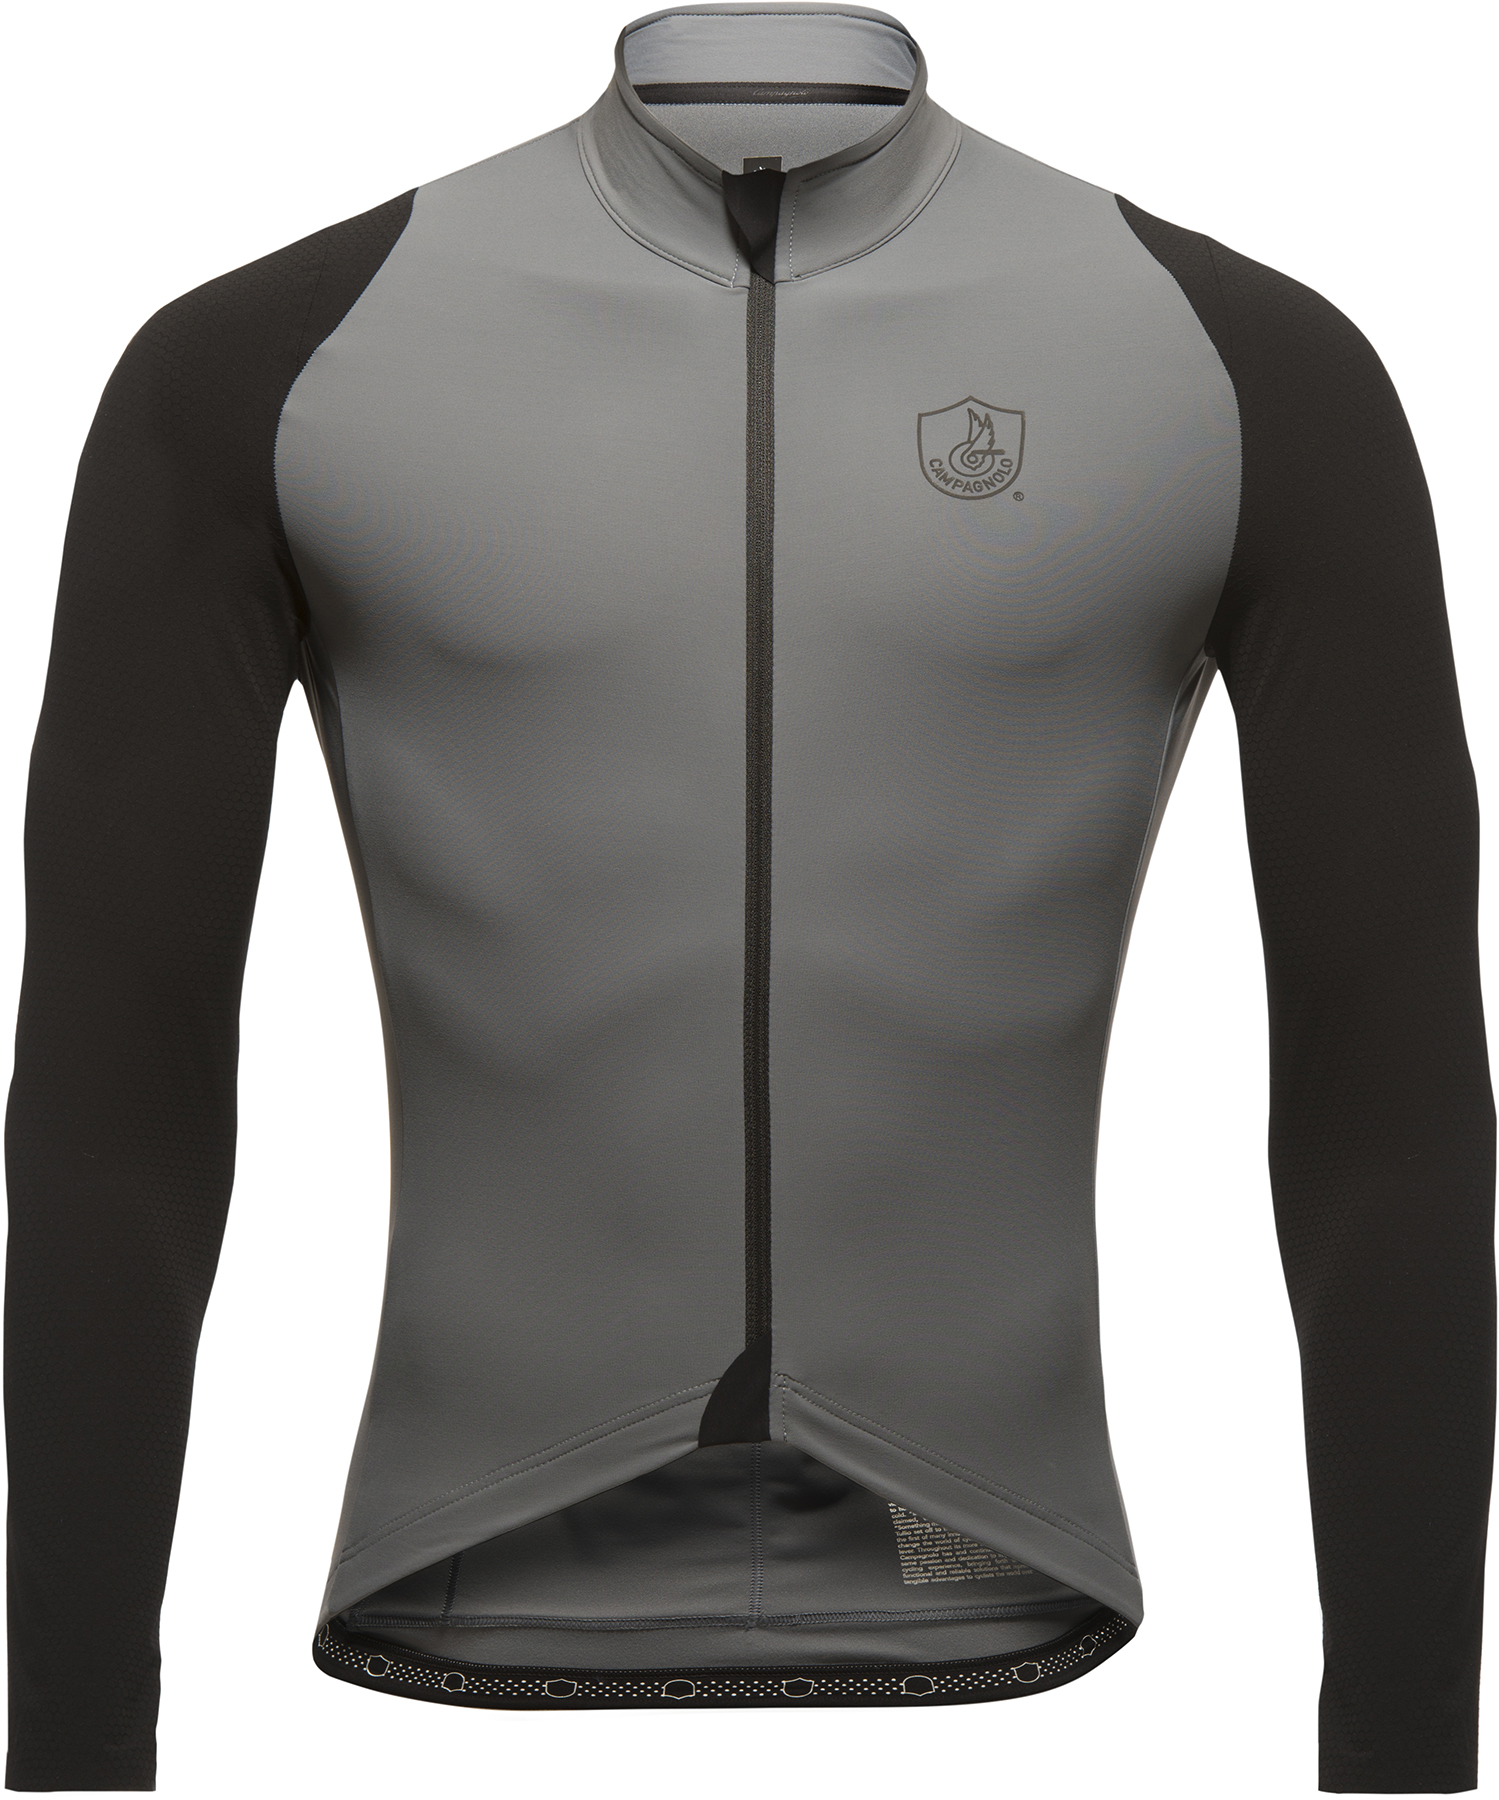 Campagnolo C-TECH Winter Aero Jersey | Jerseys